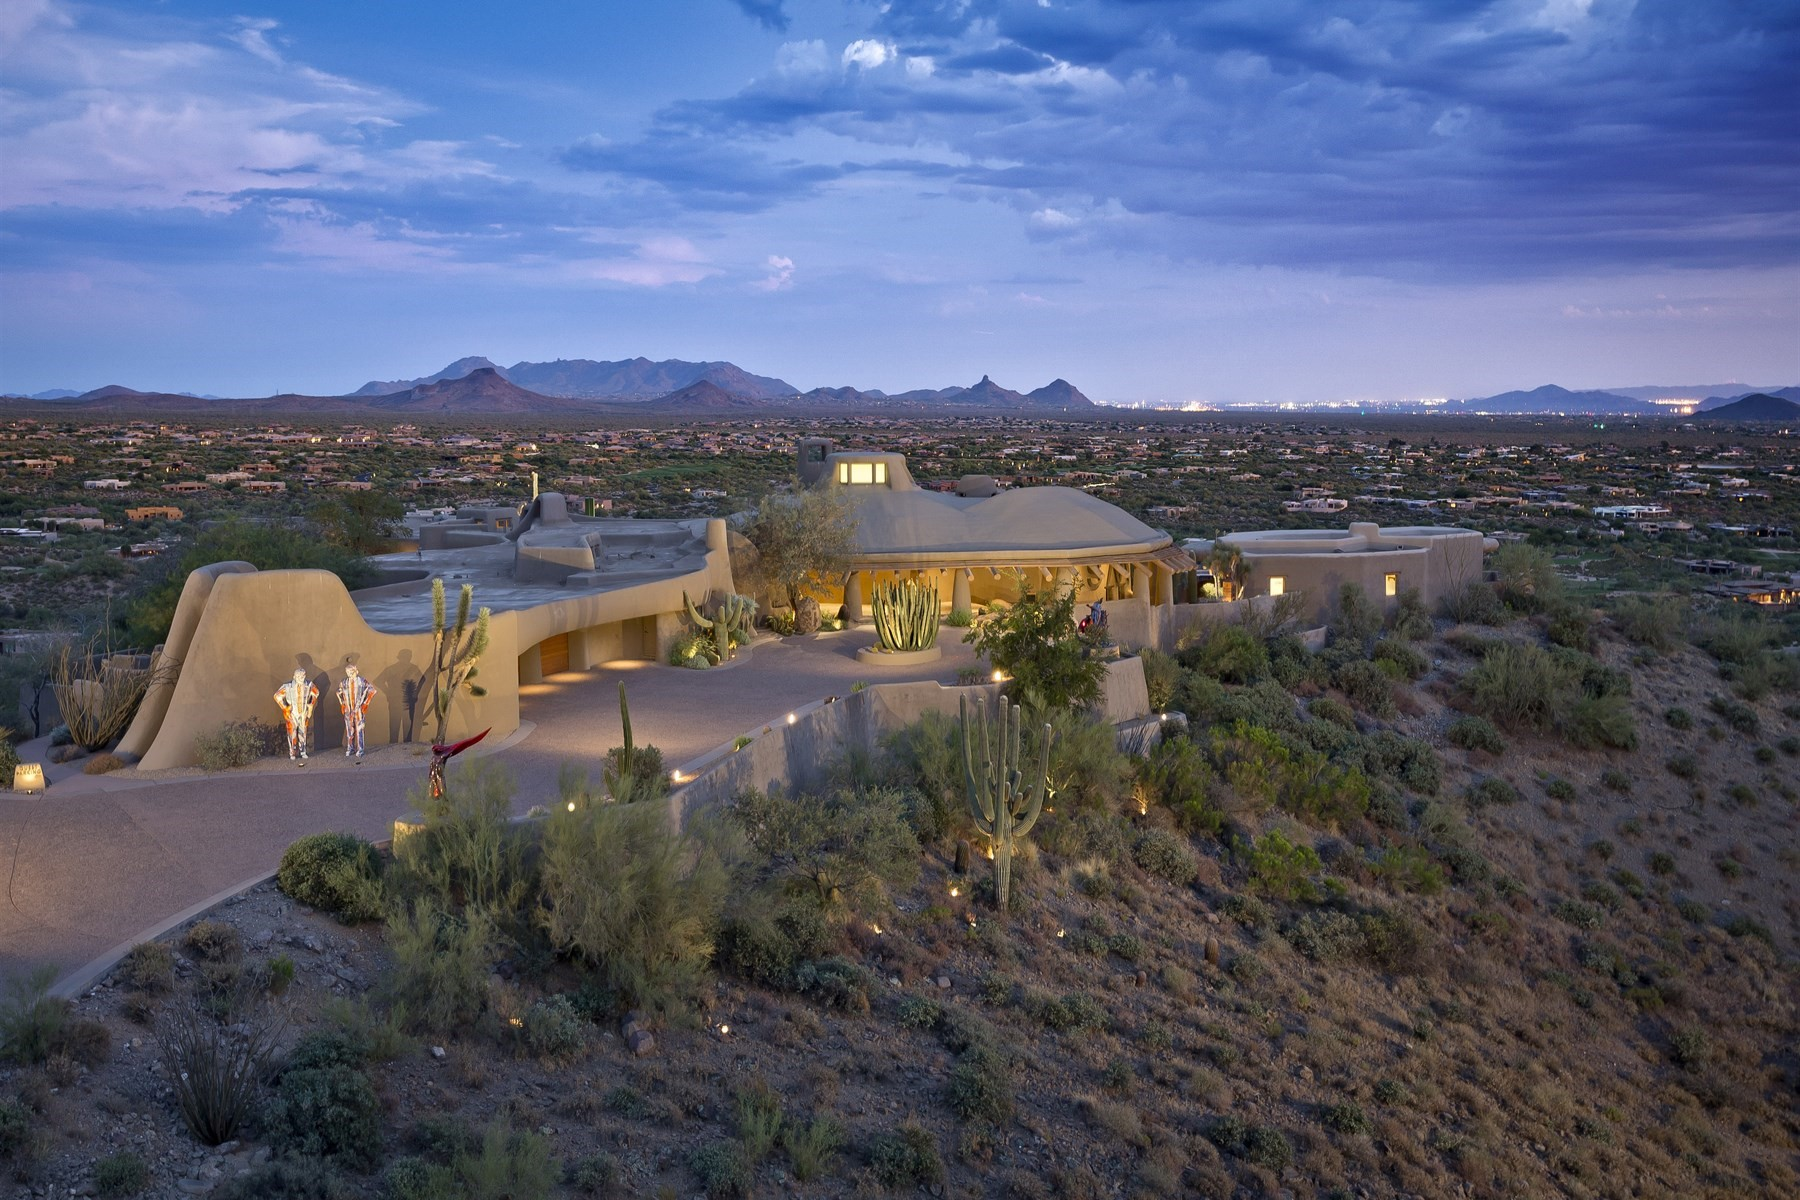 Single Family Home for Sale at One-of-a-kind 15-acre estate that towers over the valley 39029 N Alister McKenzie Dr Scottsdale, Arizona, 85262 United States